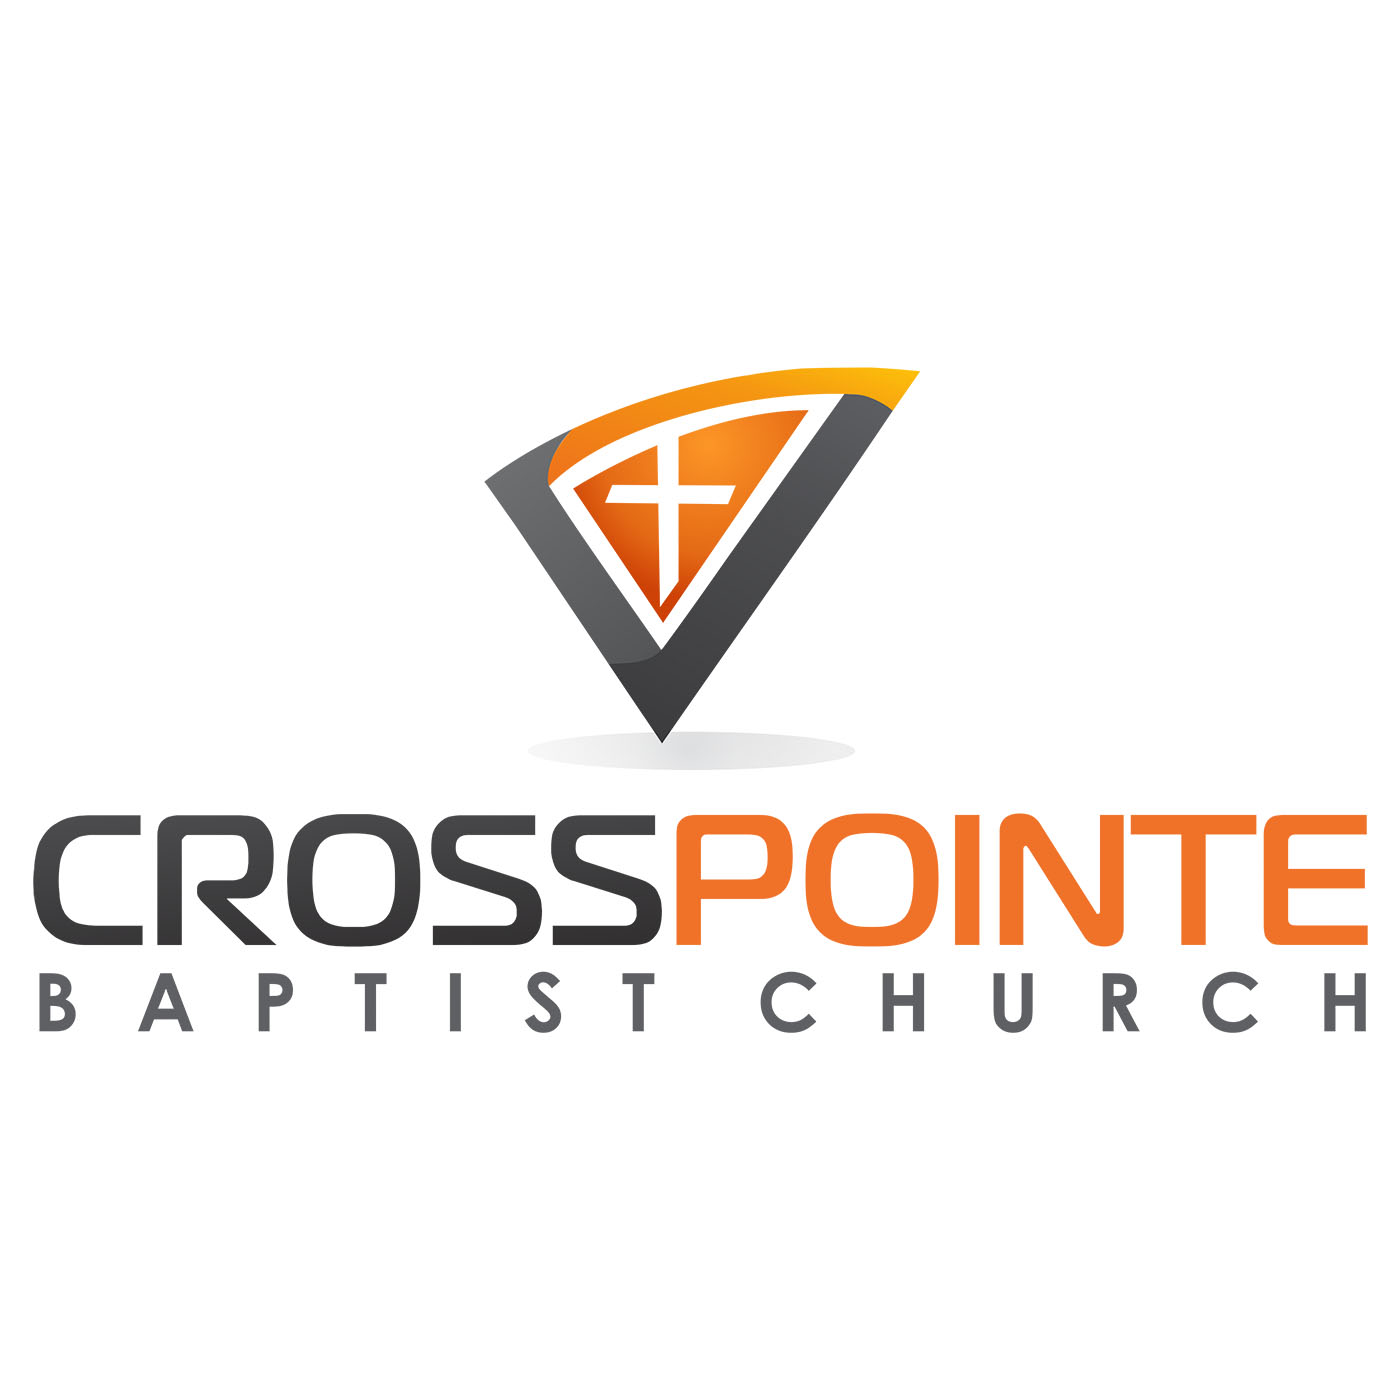 Podcast - Crosspointe Baptist Church